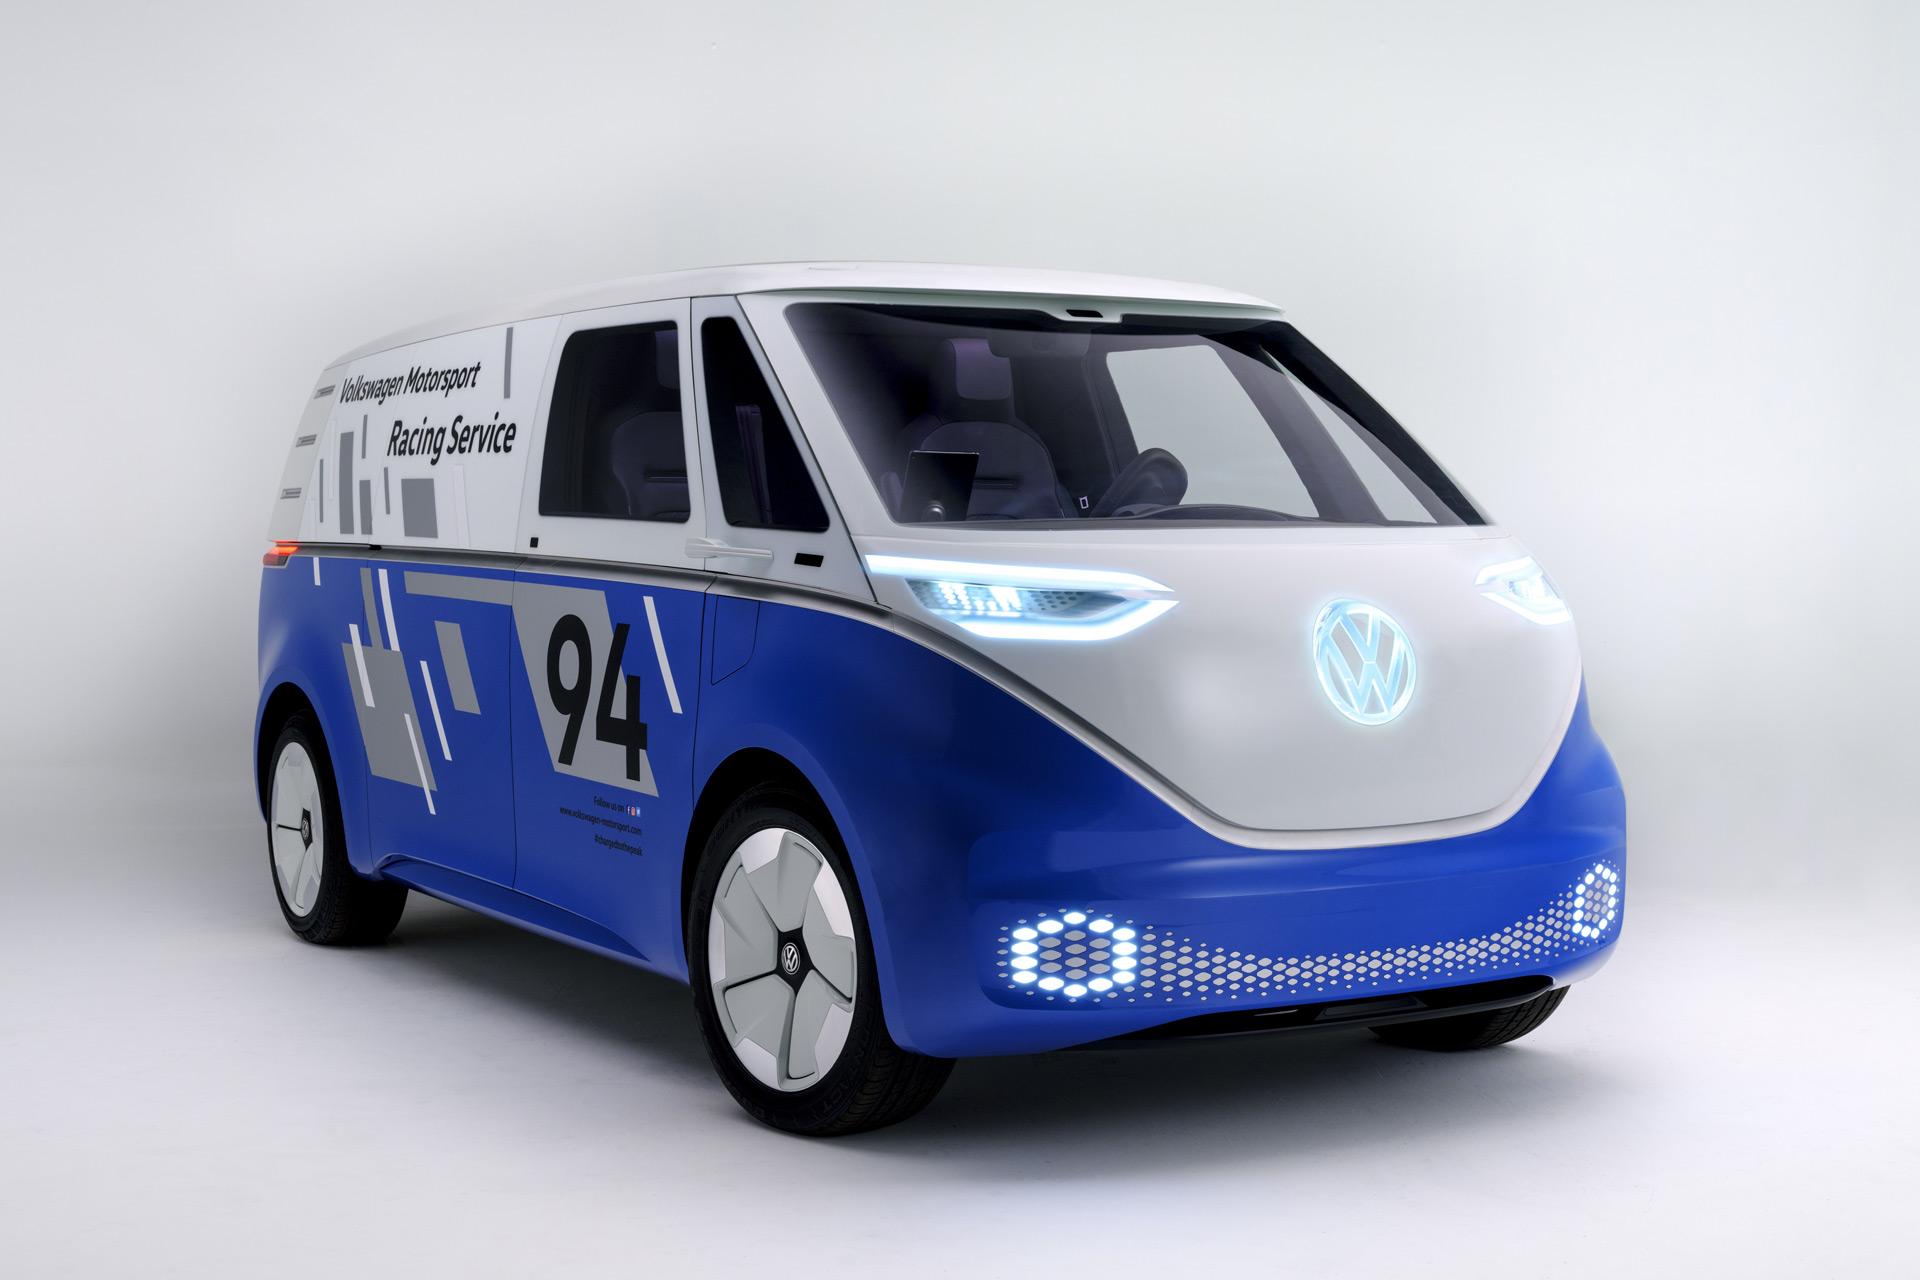 Vw Id Buzz Cargo Concept To Debut At 2018 La Auto Show Production Version Targeted For 2022 Launch